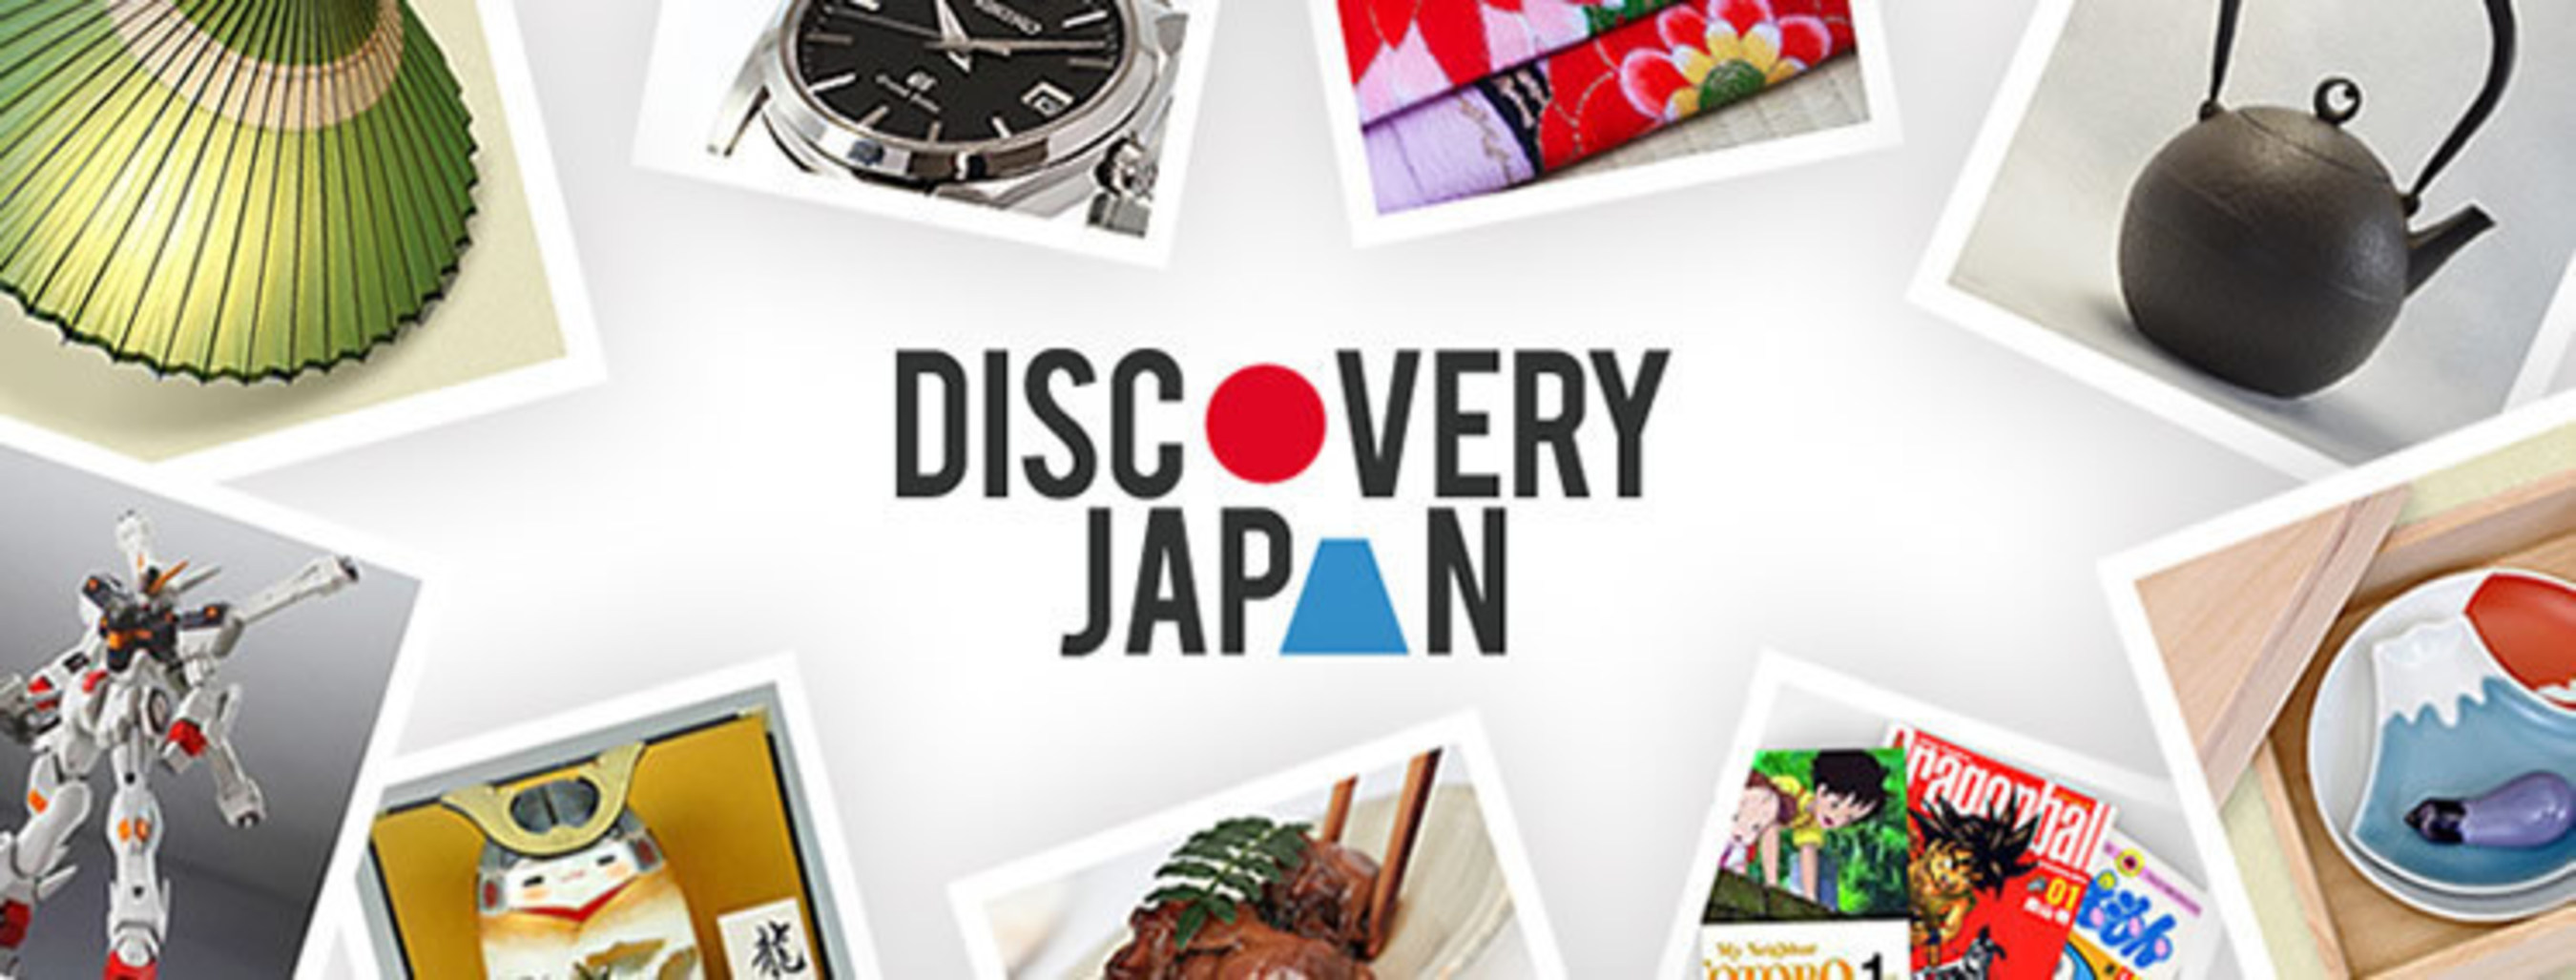 Discovery Japan Mall 出店